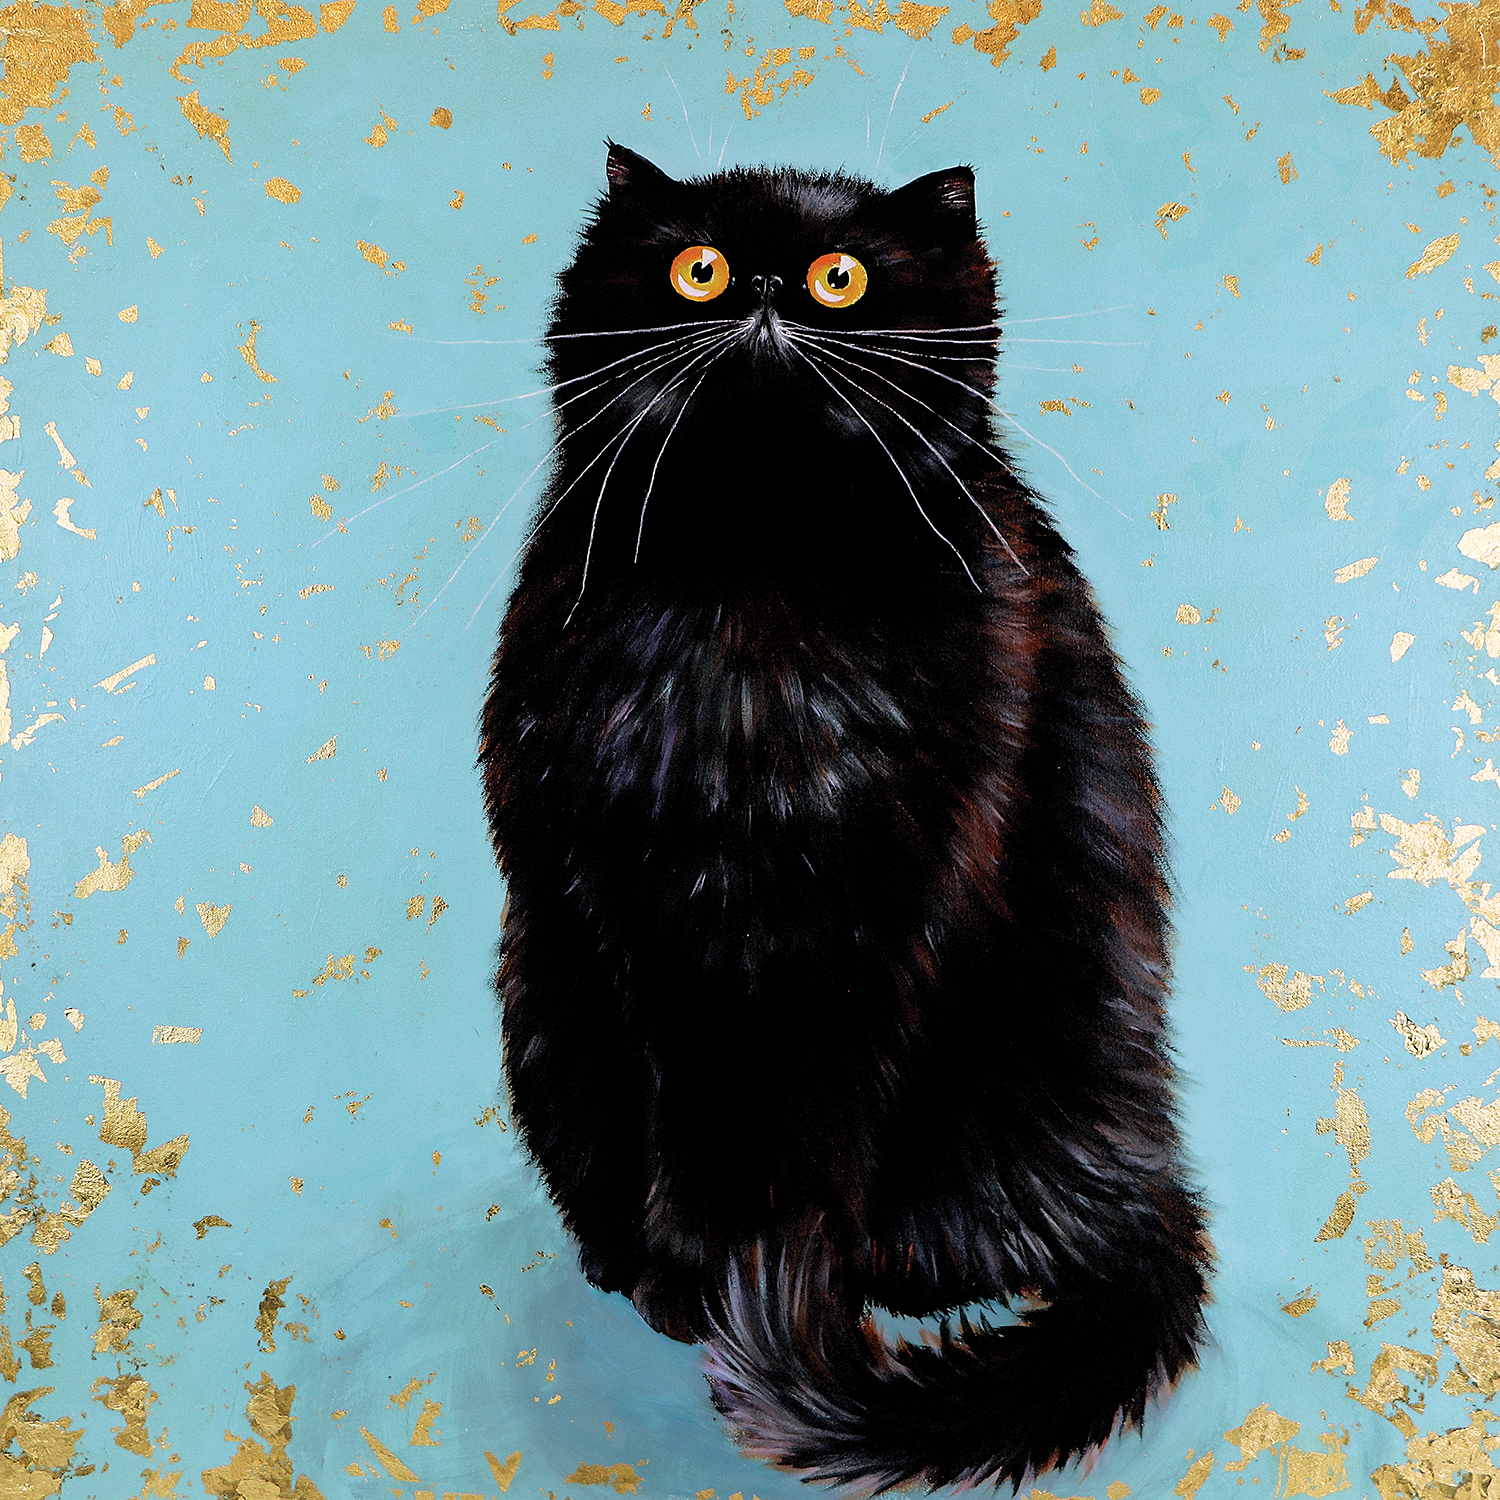 black cat with wide eyes and long whiskers on blue backdrop with gold edging